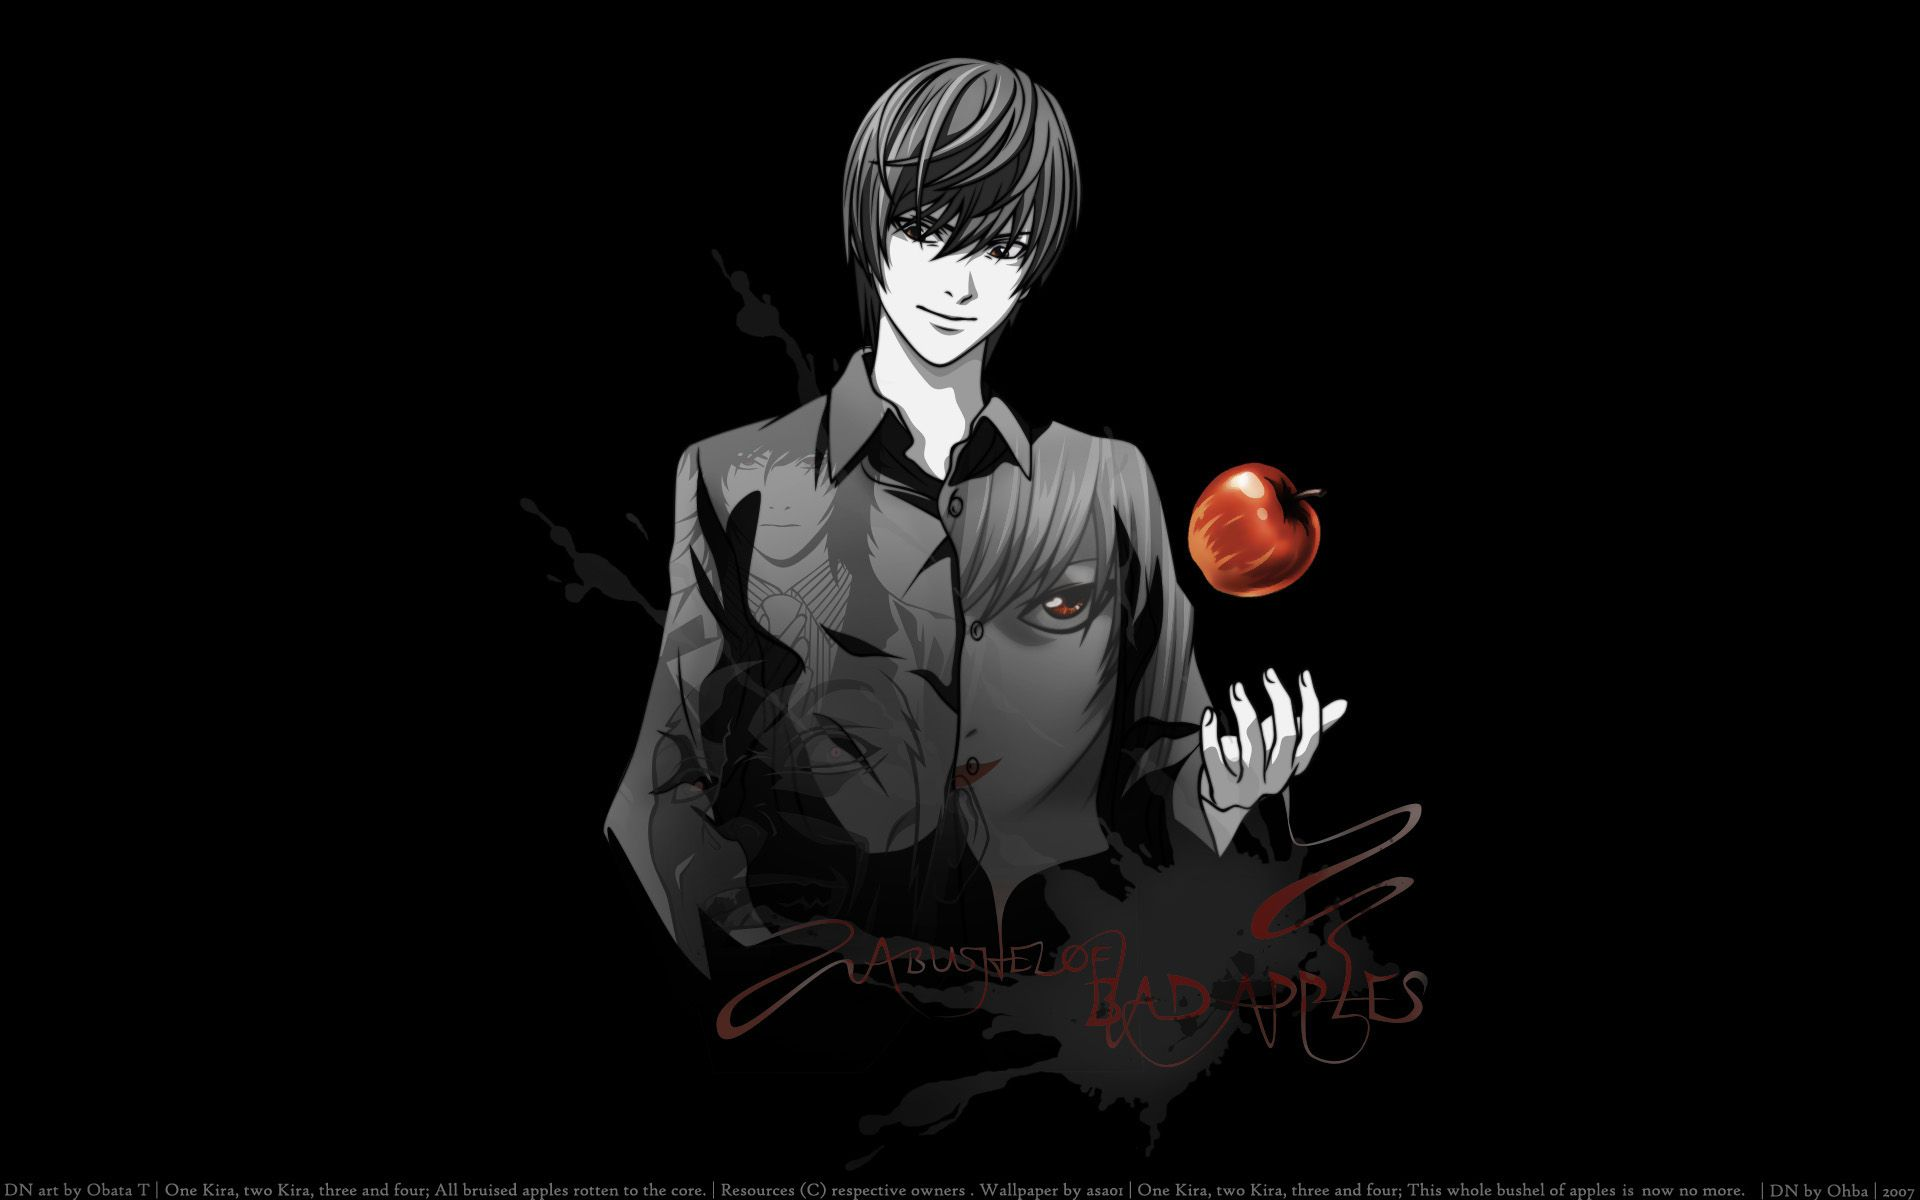 Day 9 | Best anime villain | Light Yagami/Kira (Death Note) | He may be the protagonist but I can definitely say he became the villain as the story progressed.